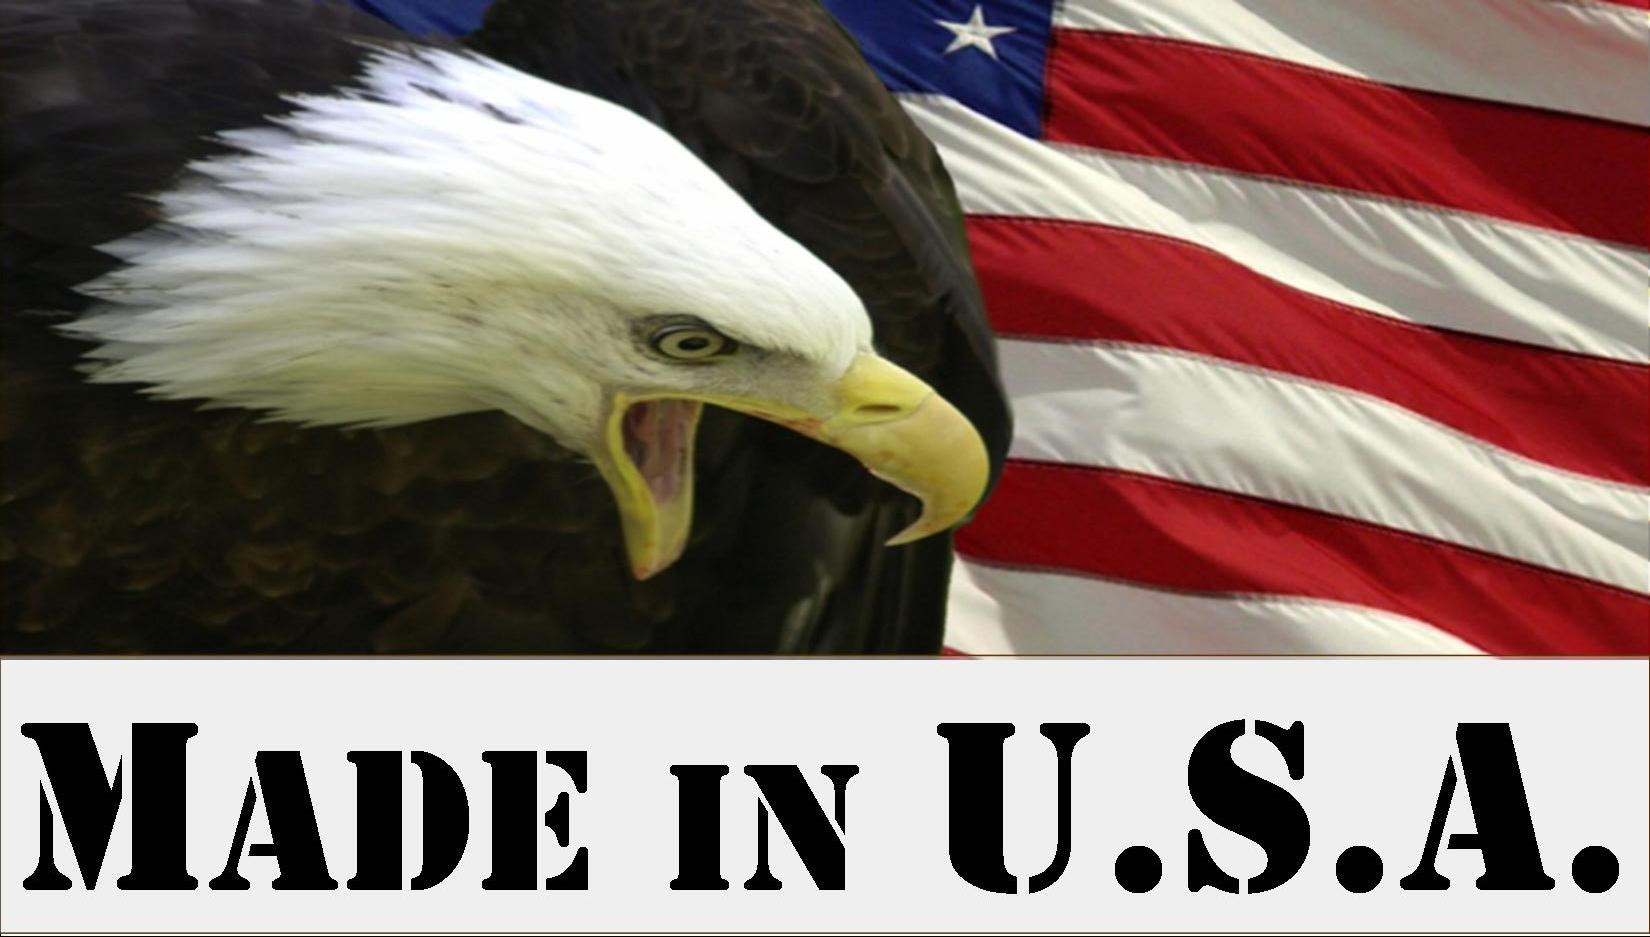 Made In Usa Logo  Click For Large Printable File Of This Made In U S A